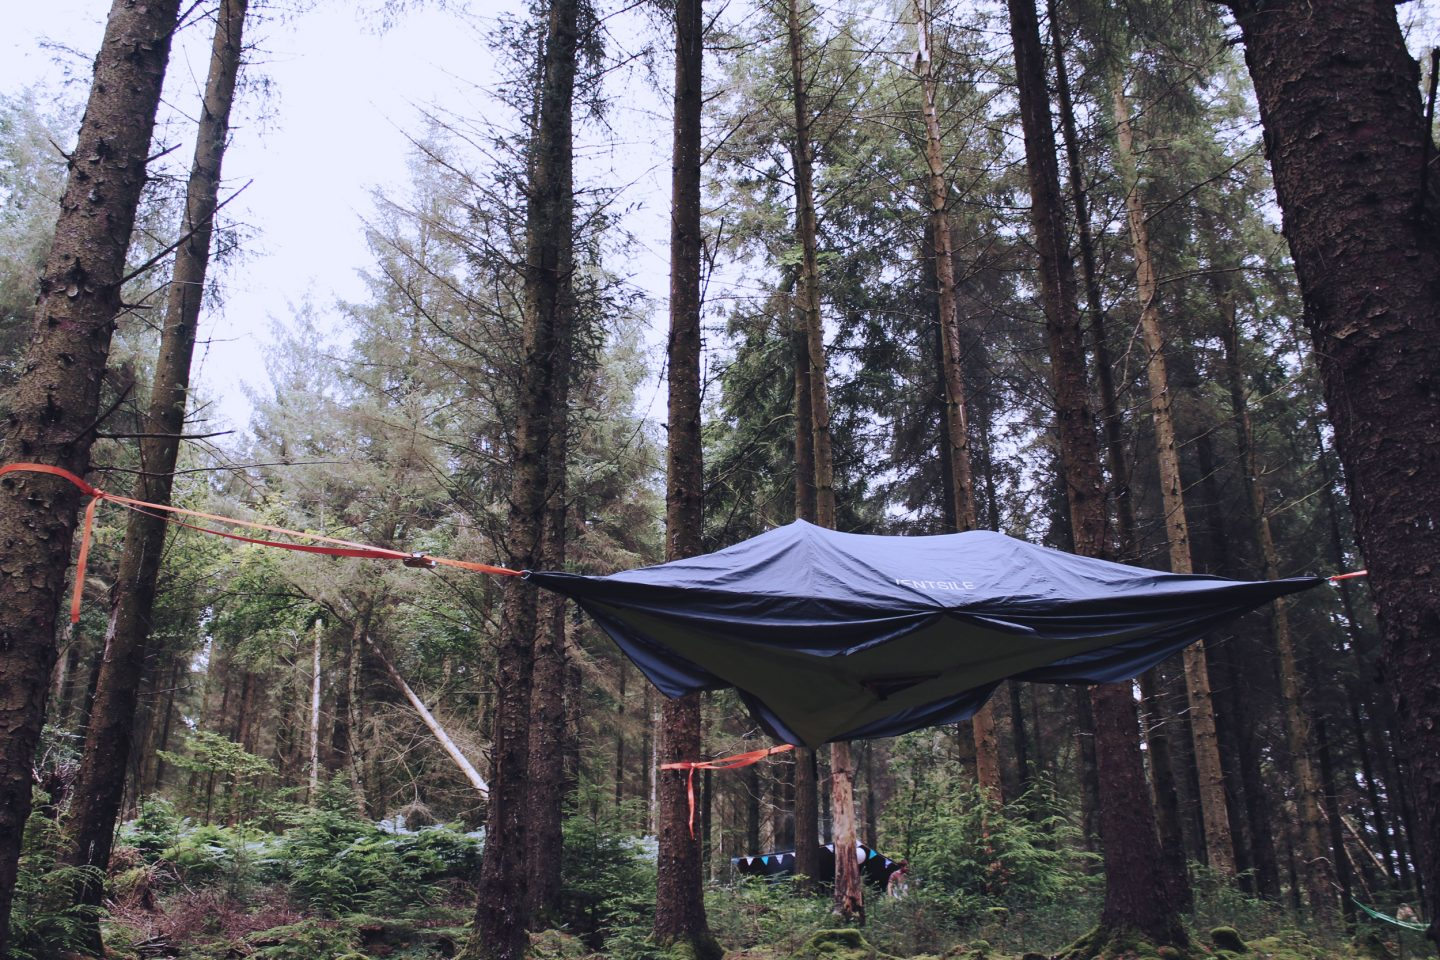 Treetop Camping in the Pine Forest